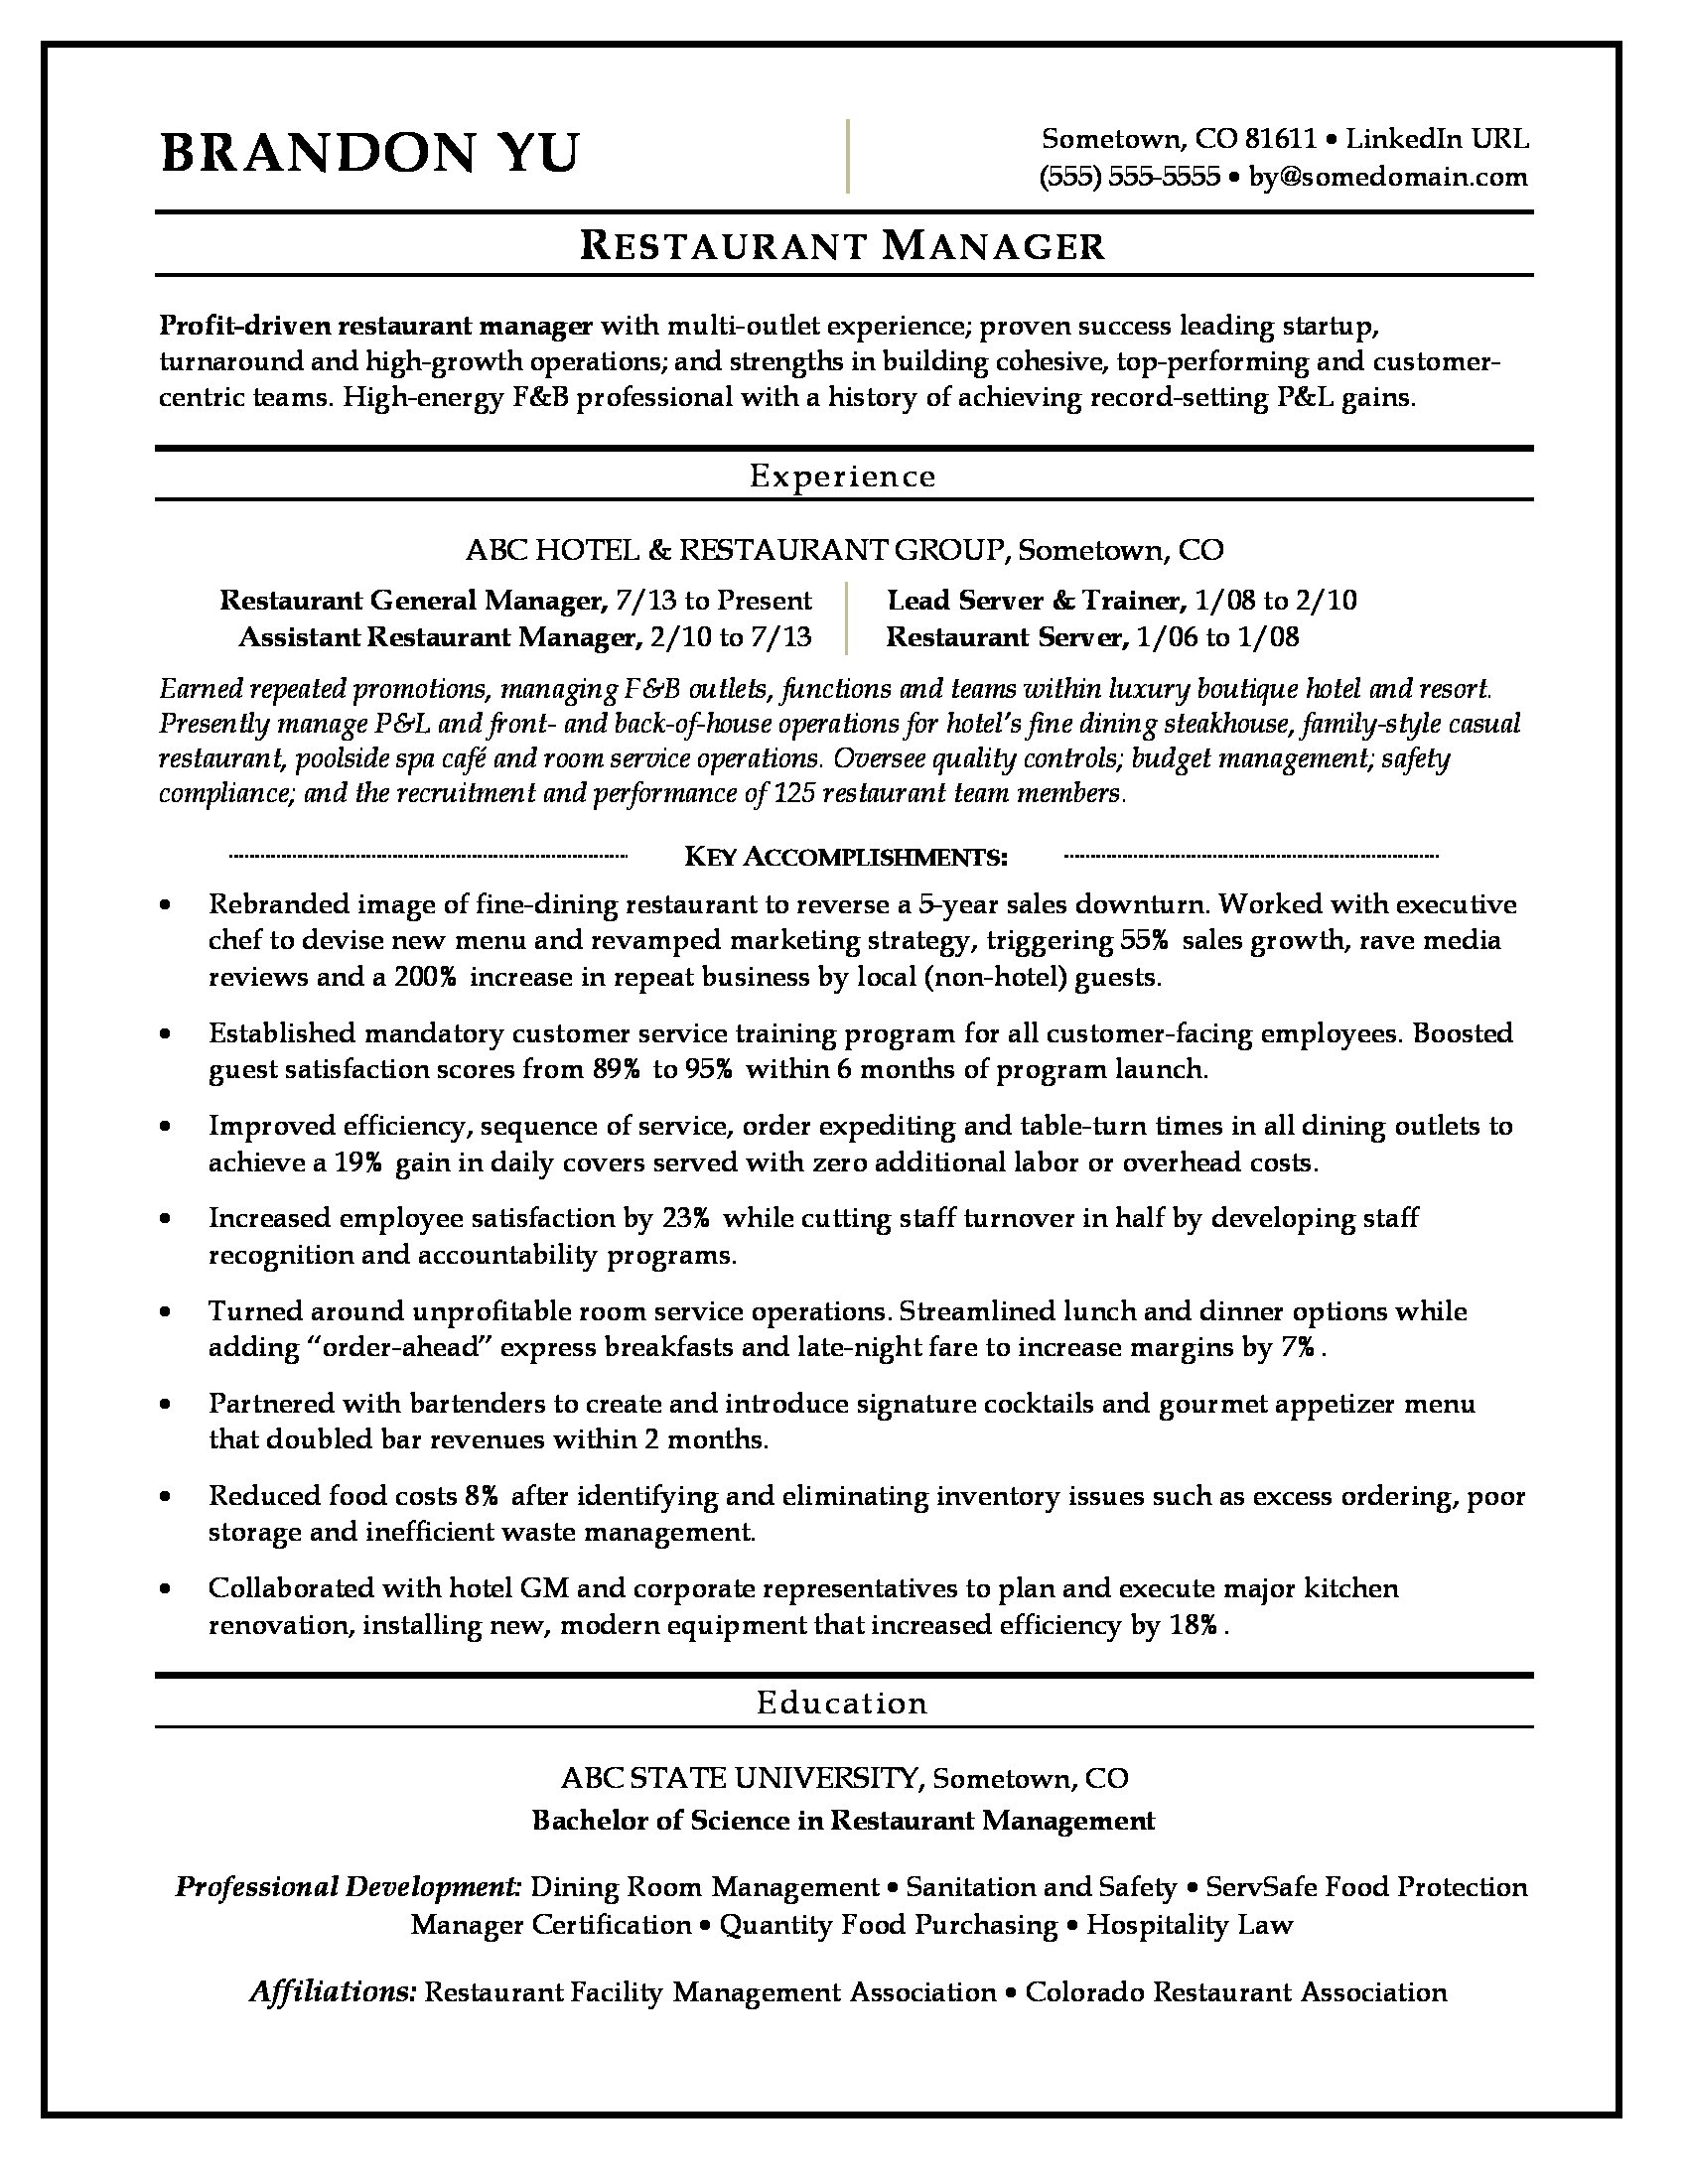 sample resume for a restaurant manager - Sample Resume For Manager